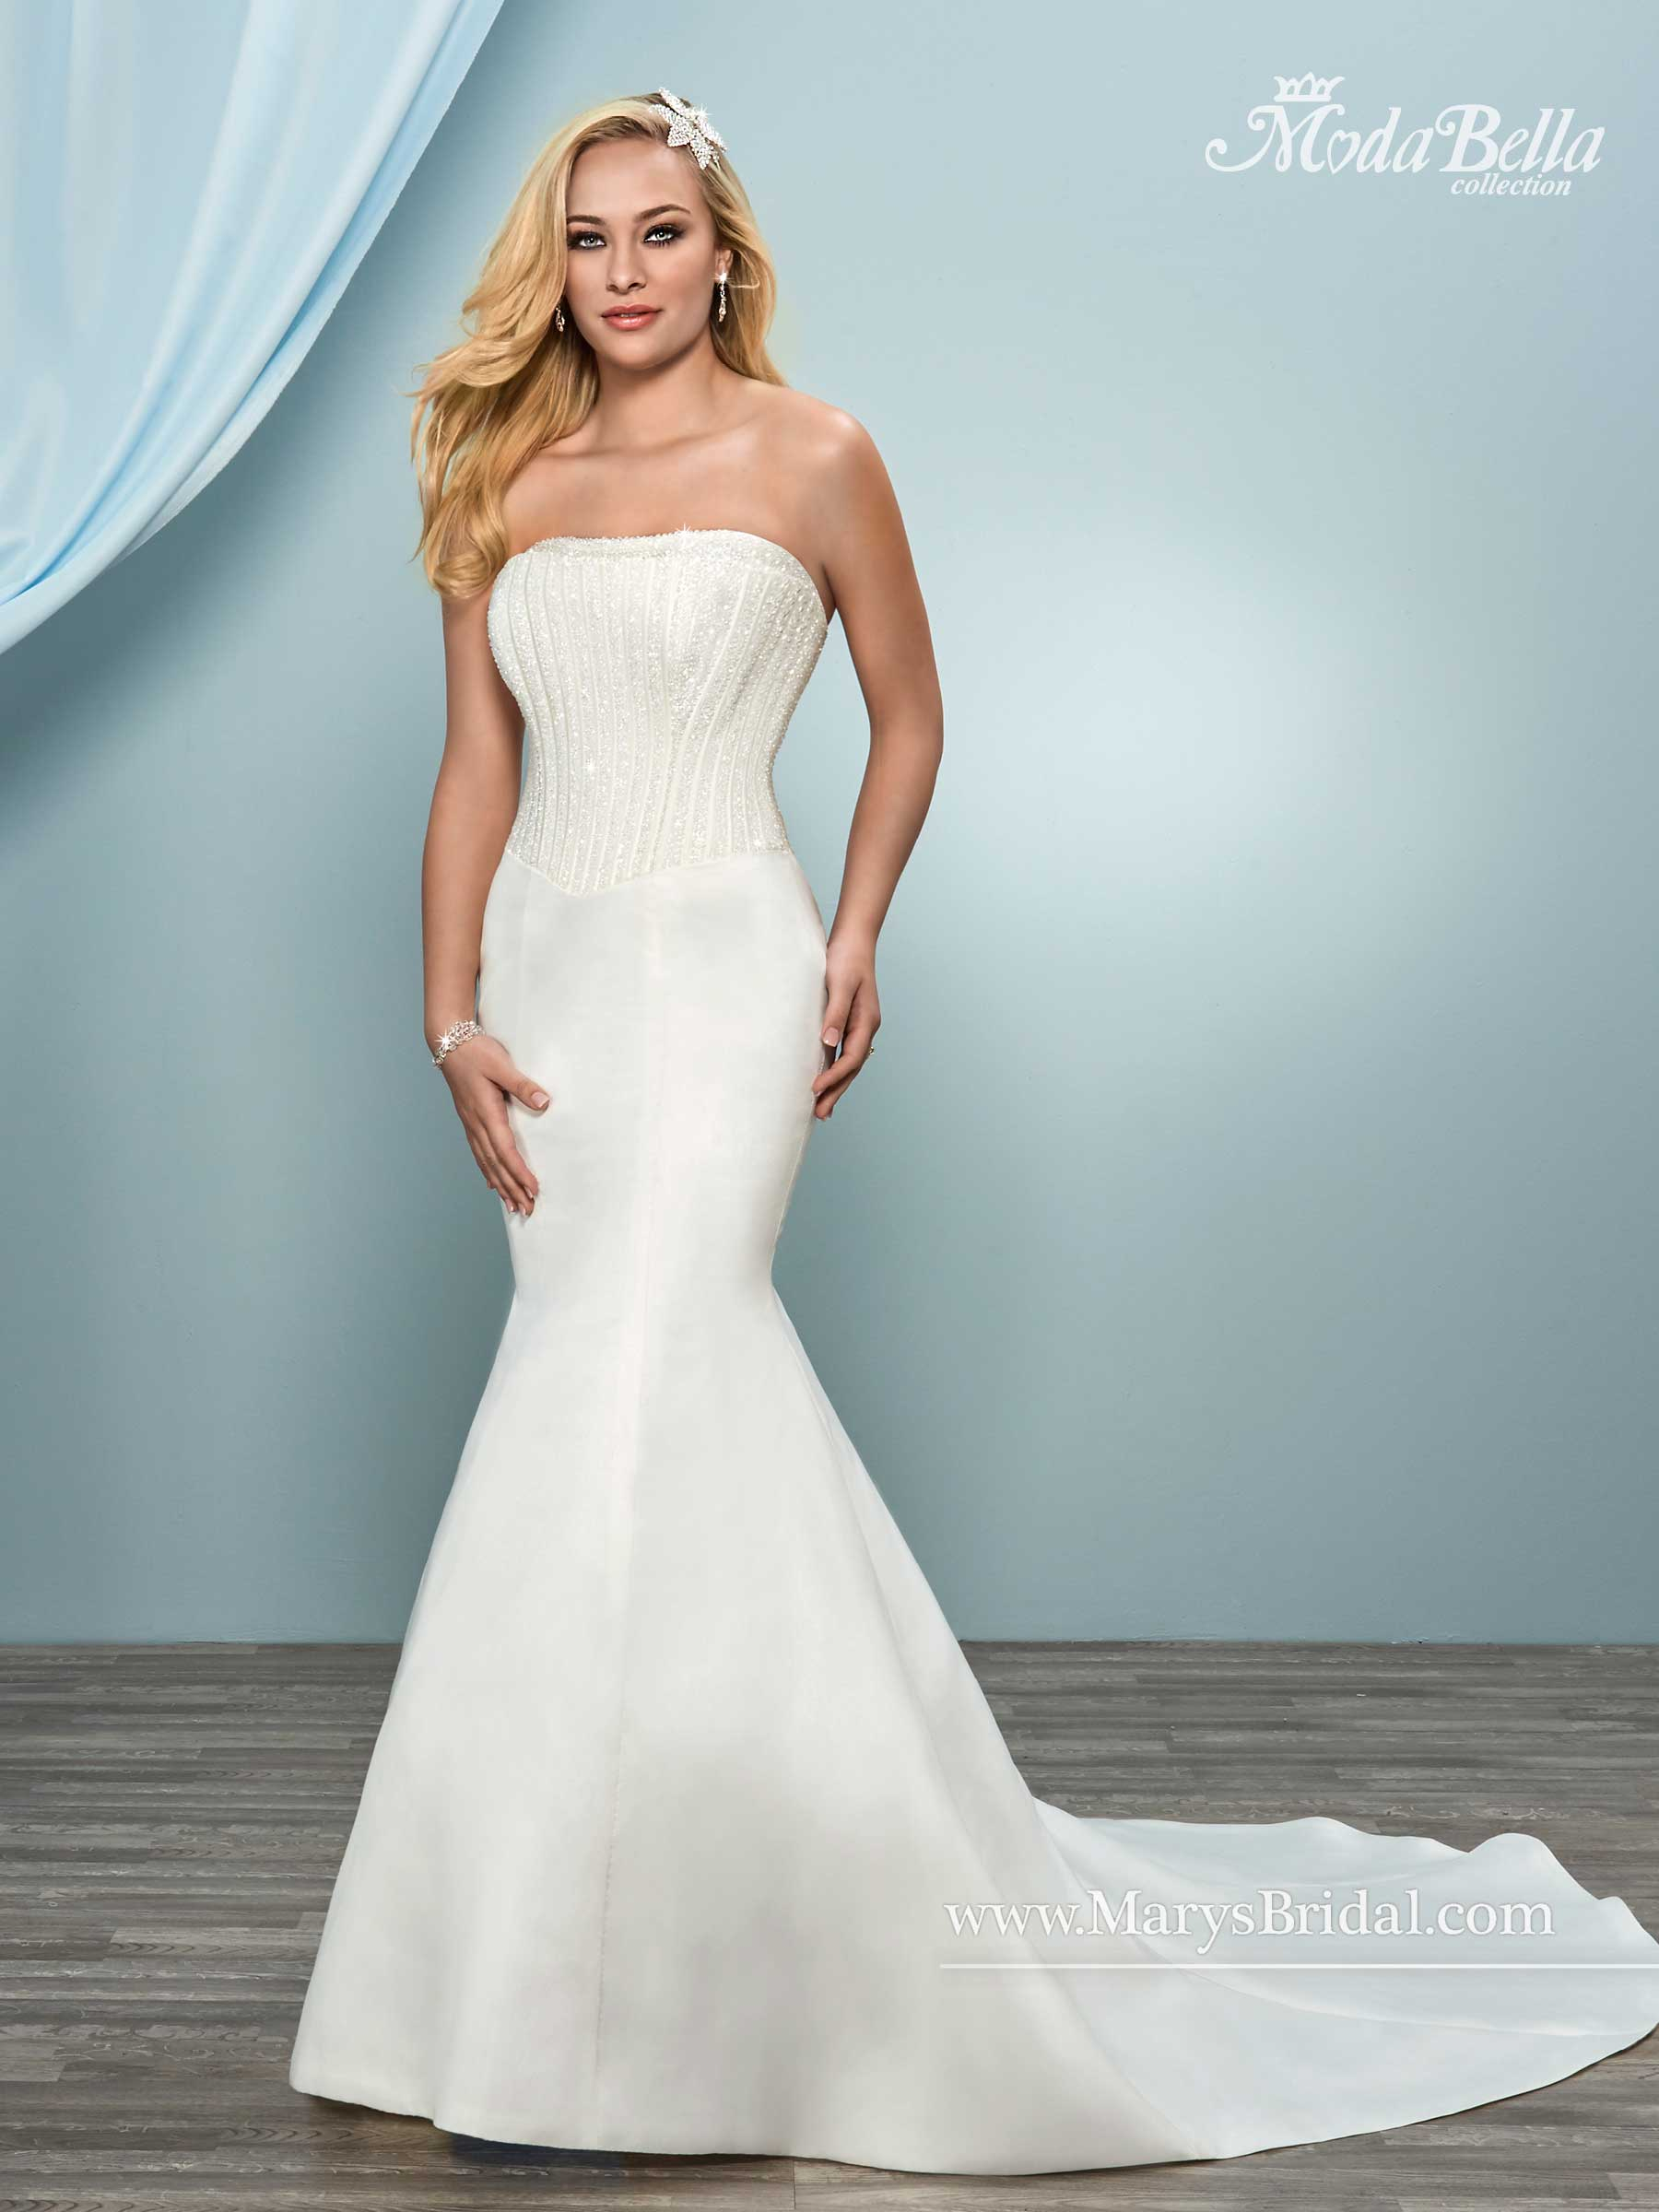 Bridal Dresses | Style - 3Y649 in Ivory or White Color